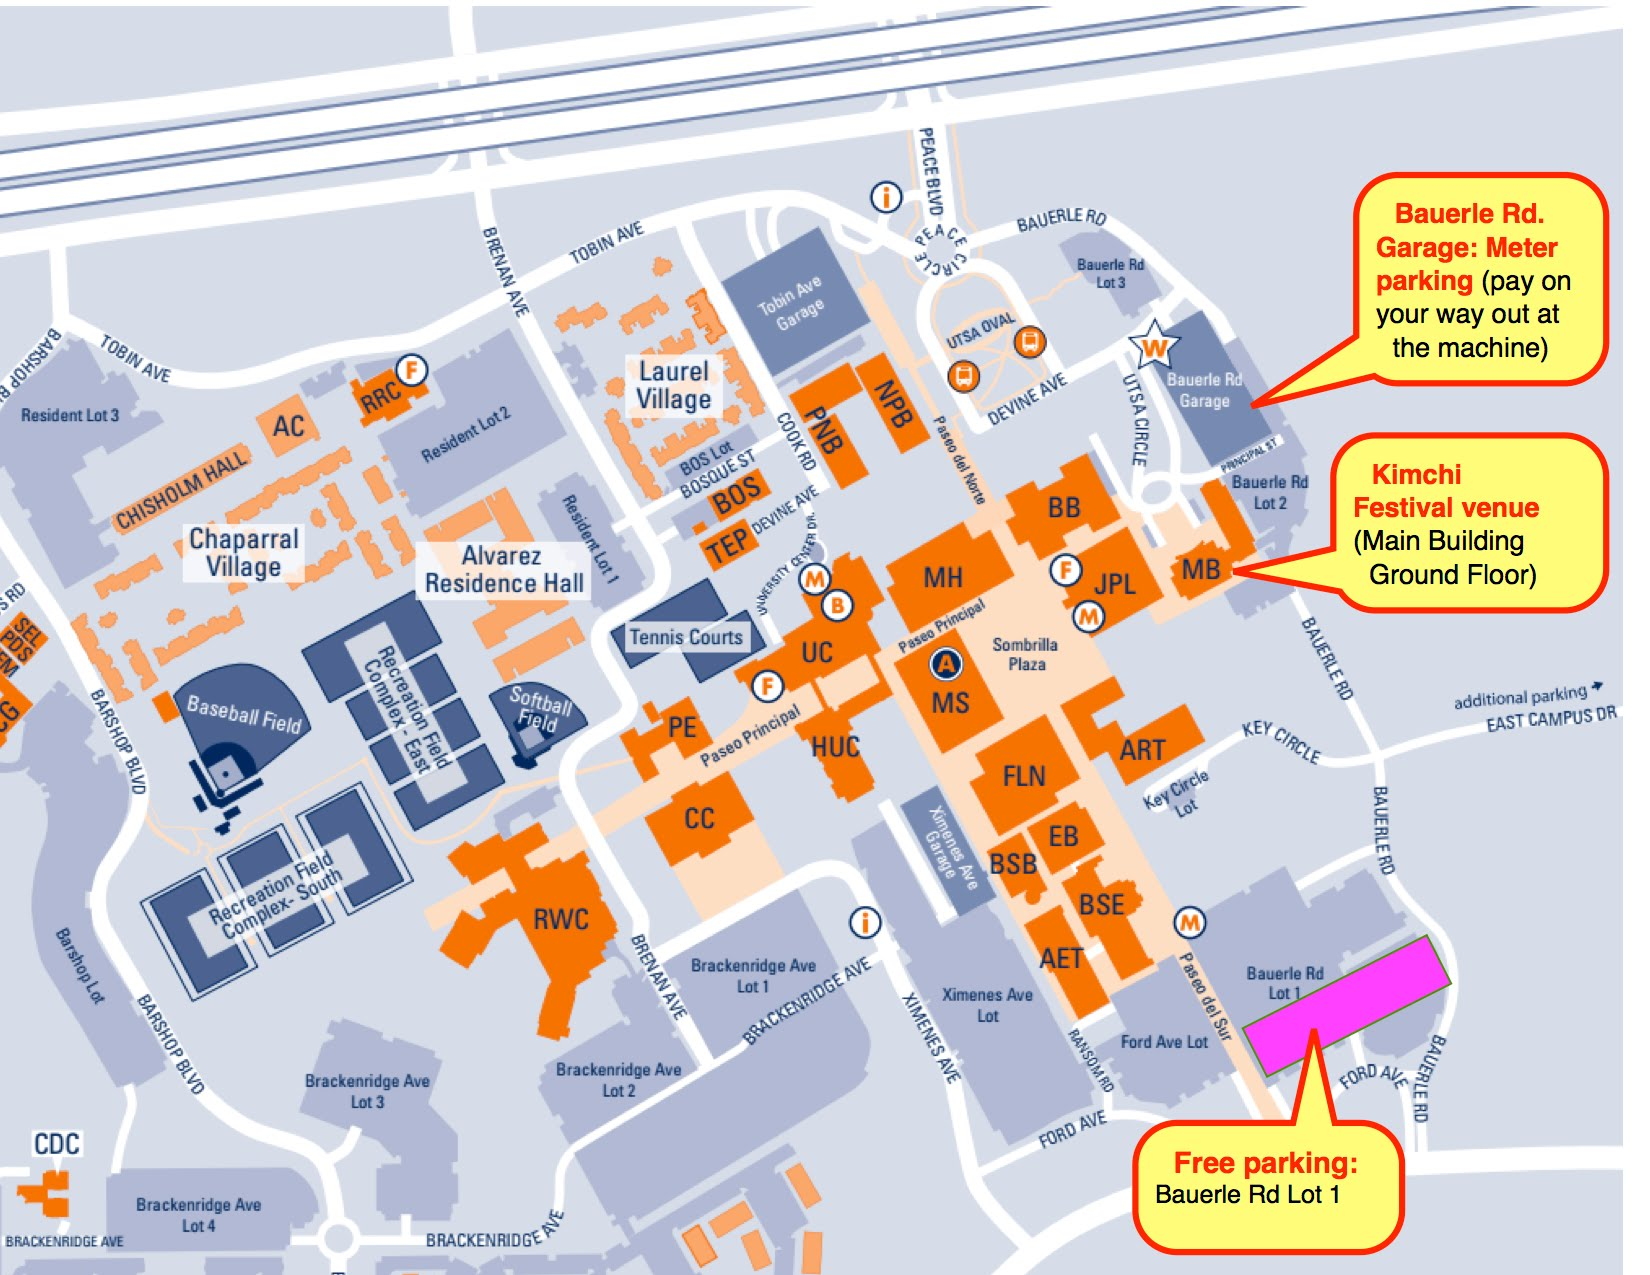 Utsa Campus Map Parking for Kimchi Festival   UTSA campus map with driving directions Utsa Campus Map